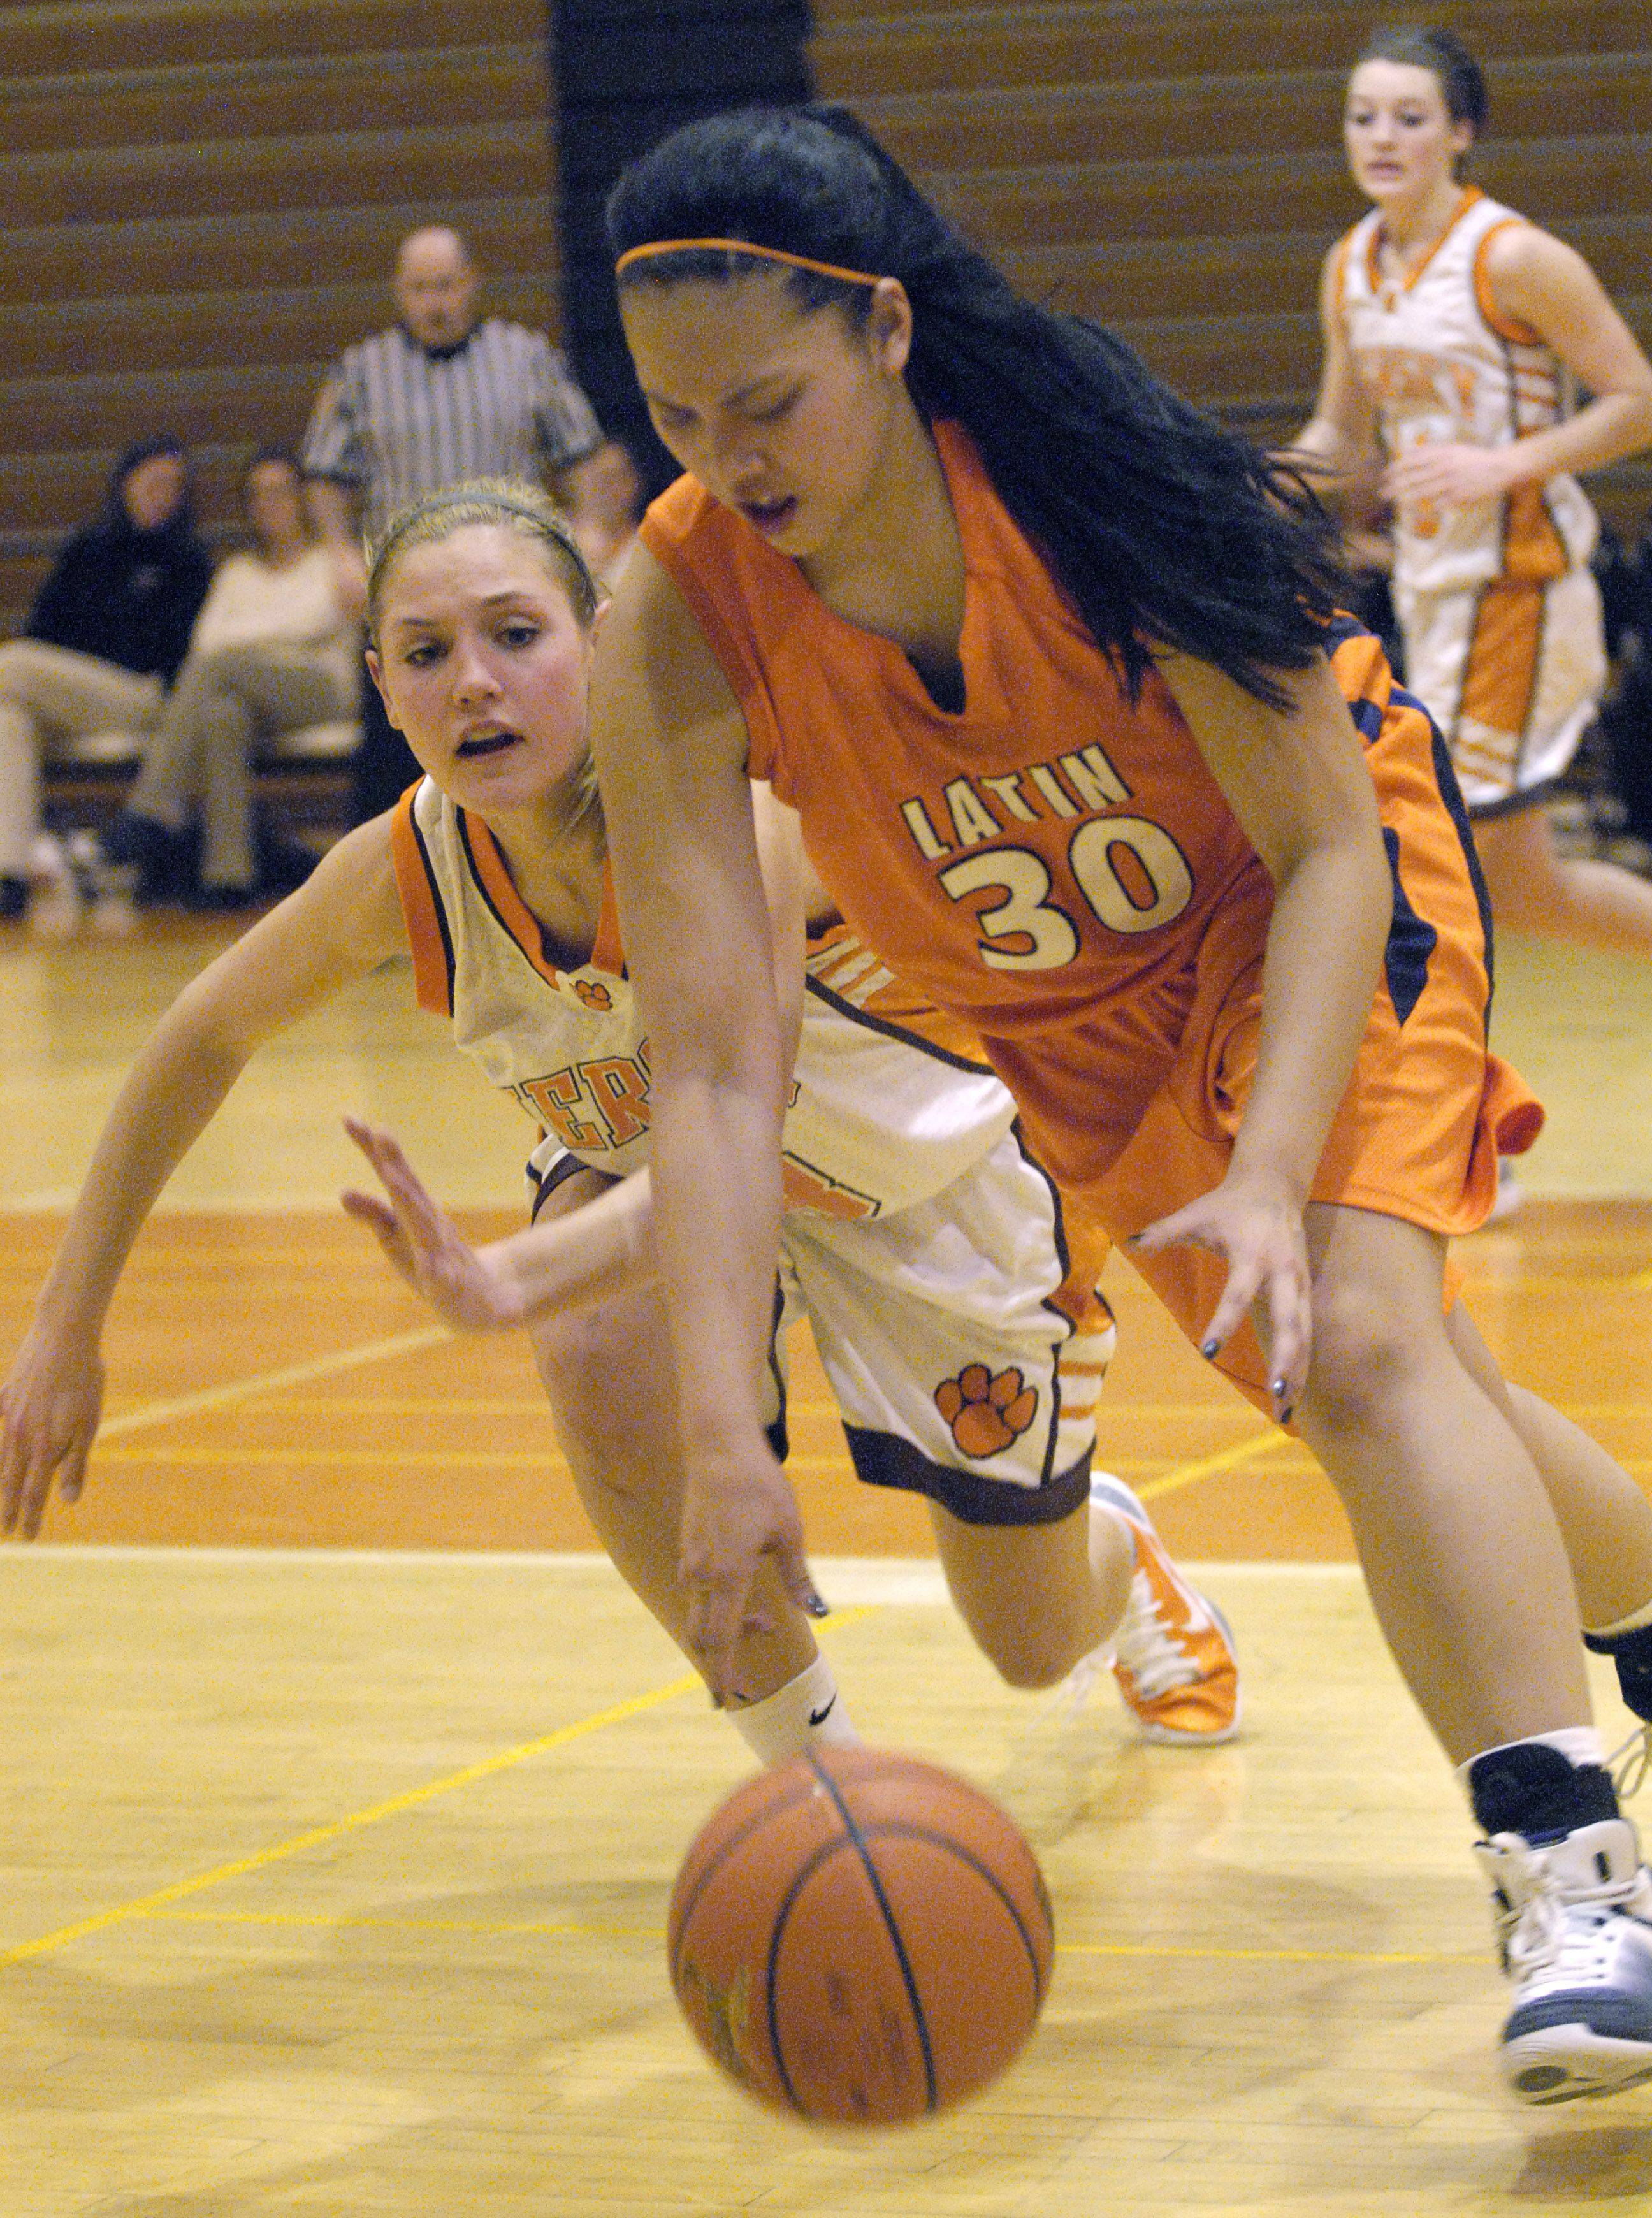 Images from the Chicago Latin vs Hersey girls basketball game in Arlington Heights on Monday, January 10th.